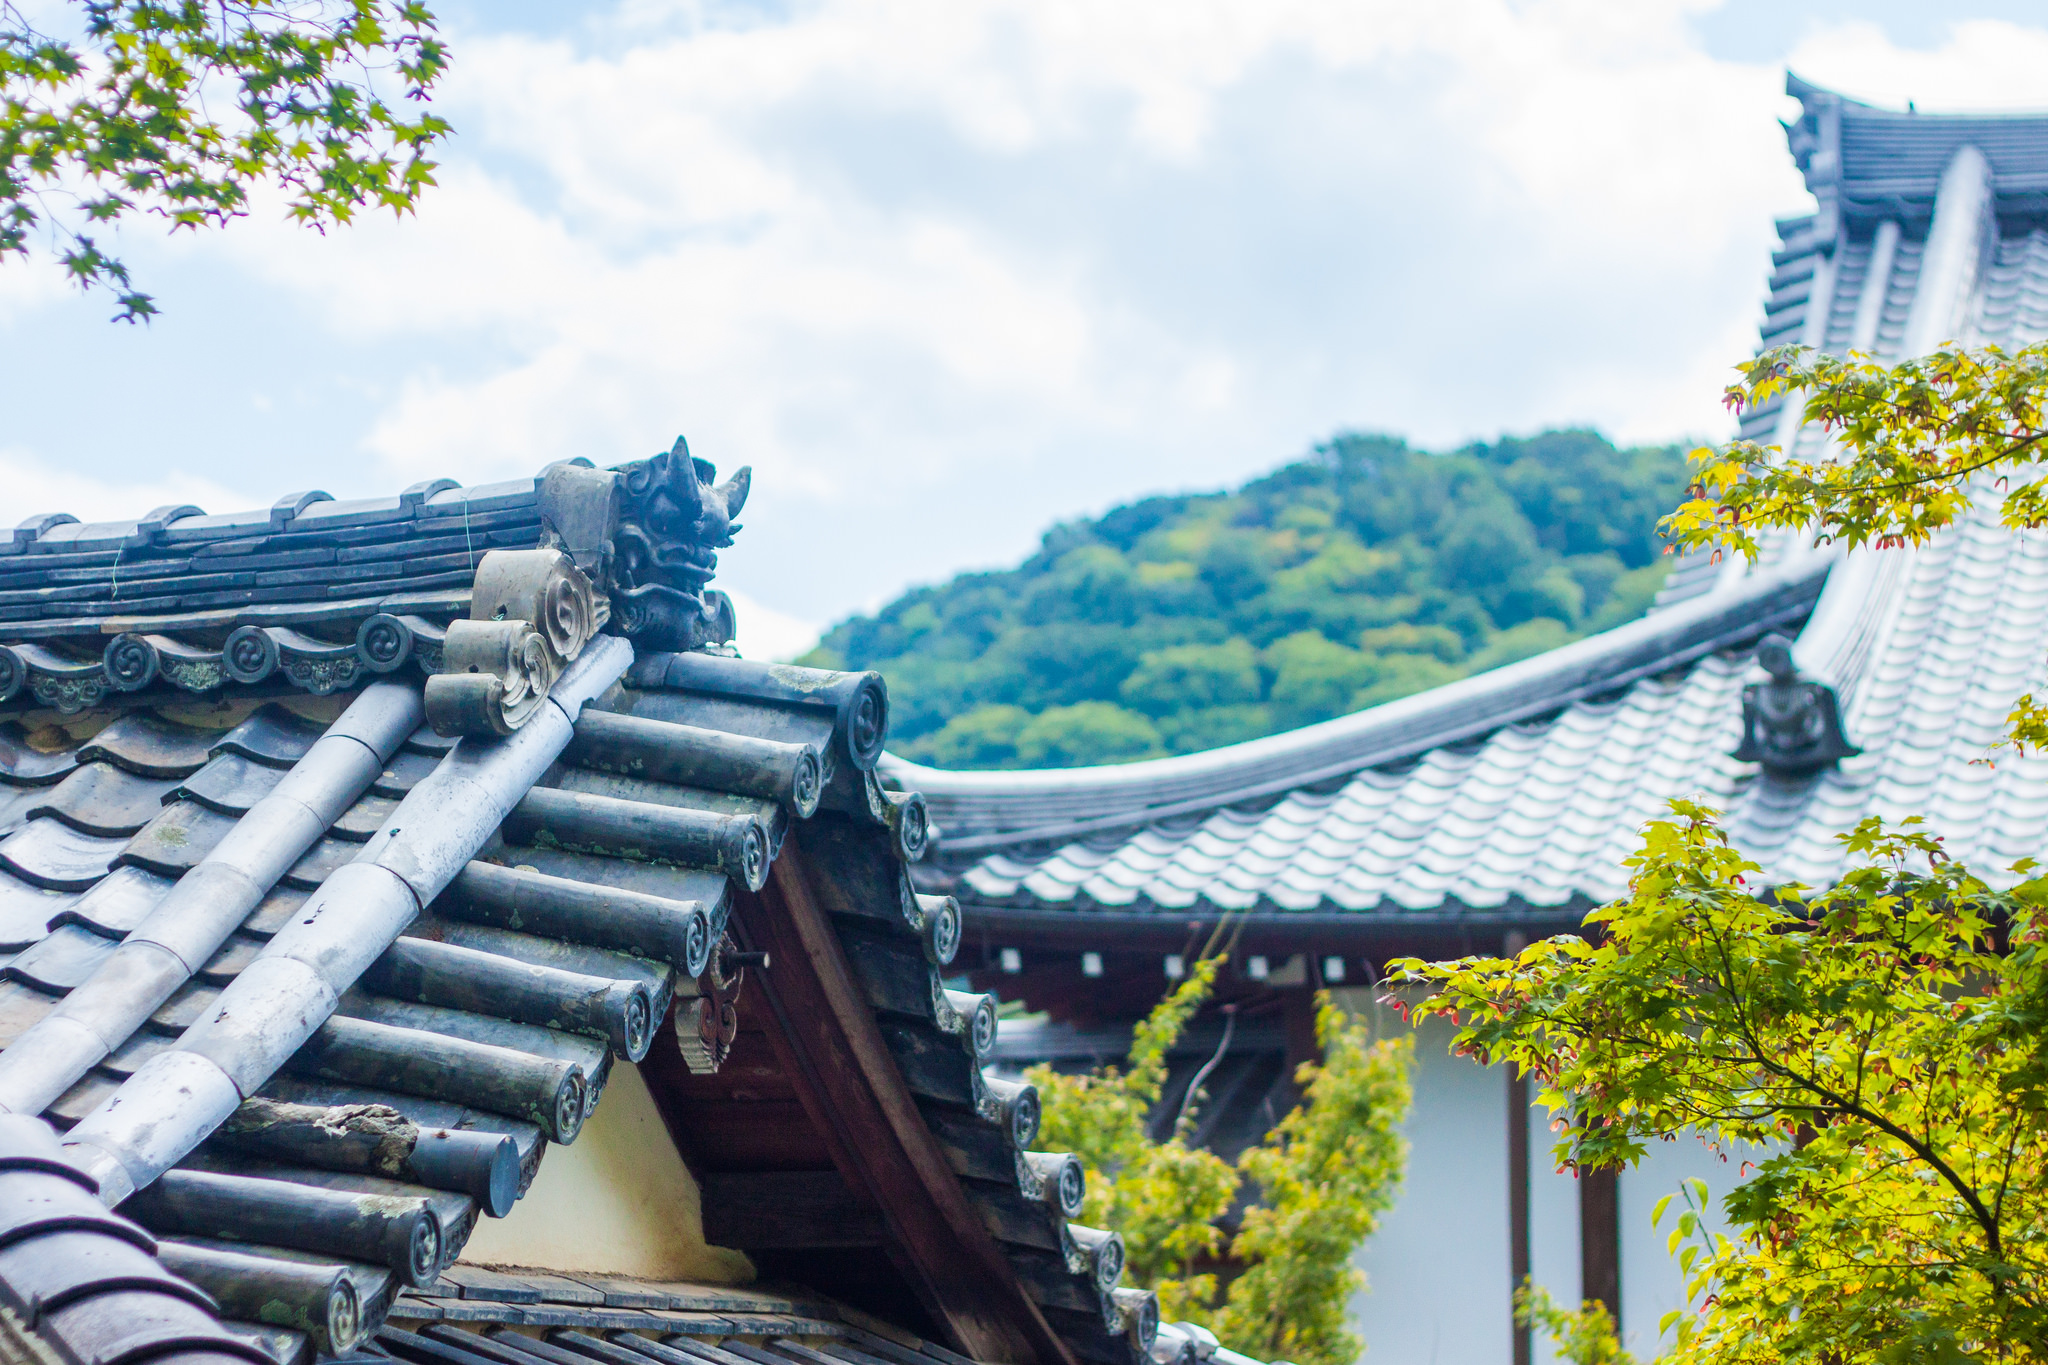 A Guide to Finding your Zen in the Peaceful and Serene Gardens of Tenryu-ji Temple Arashiyama